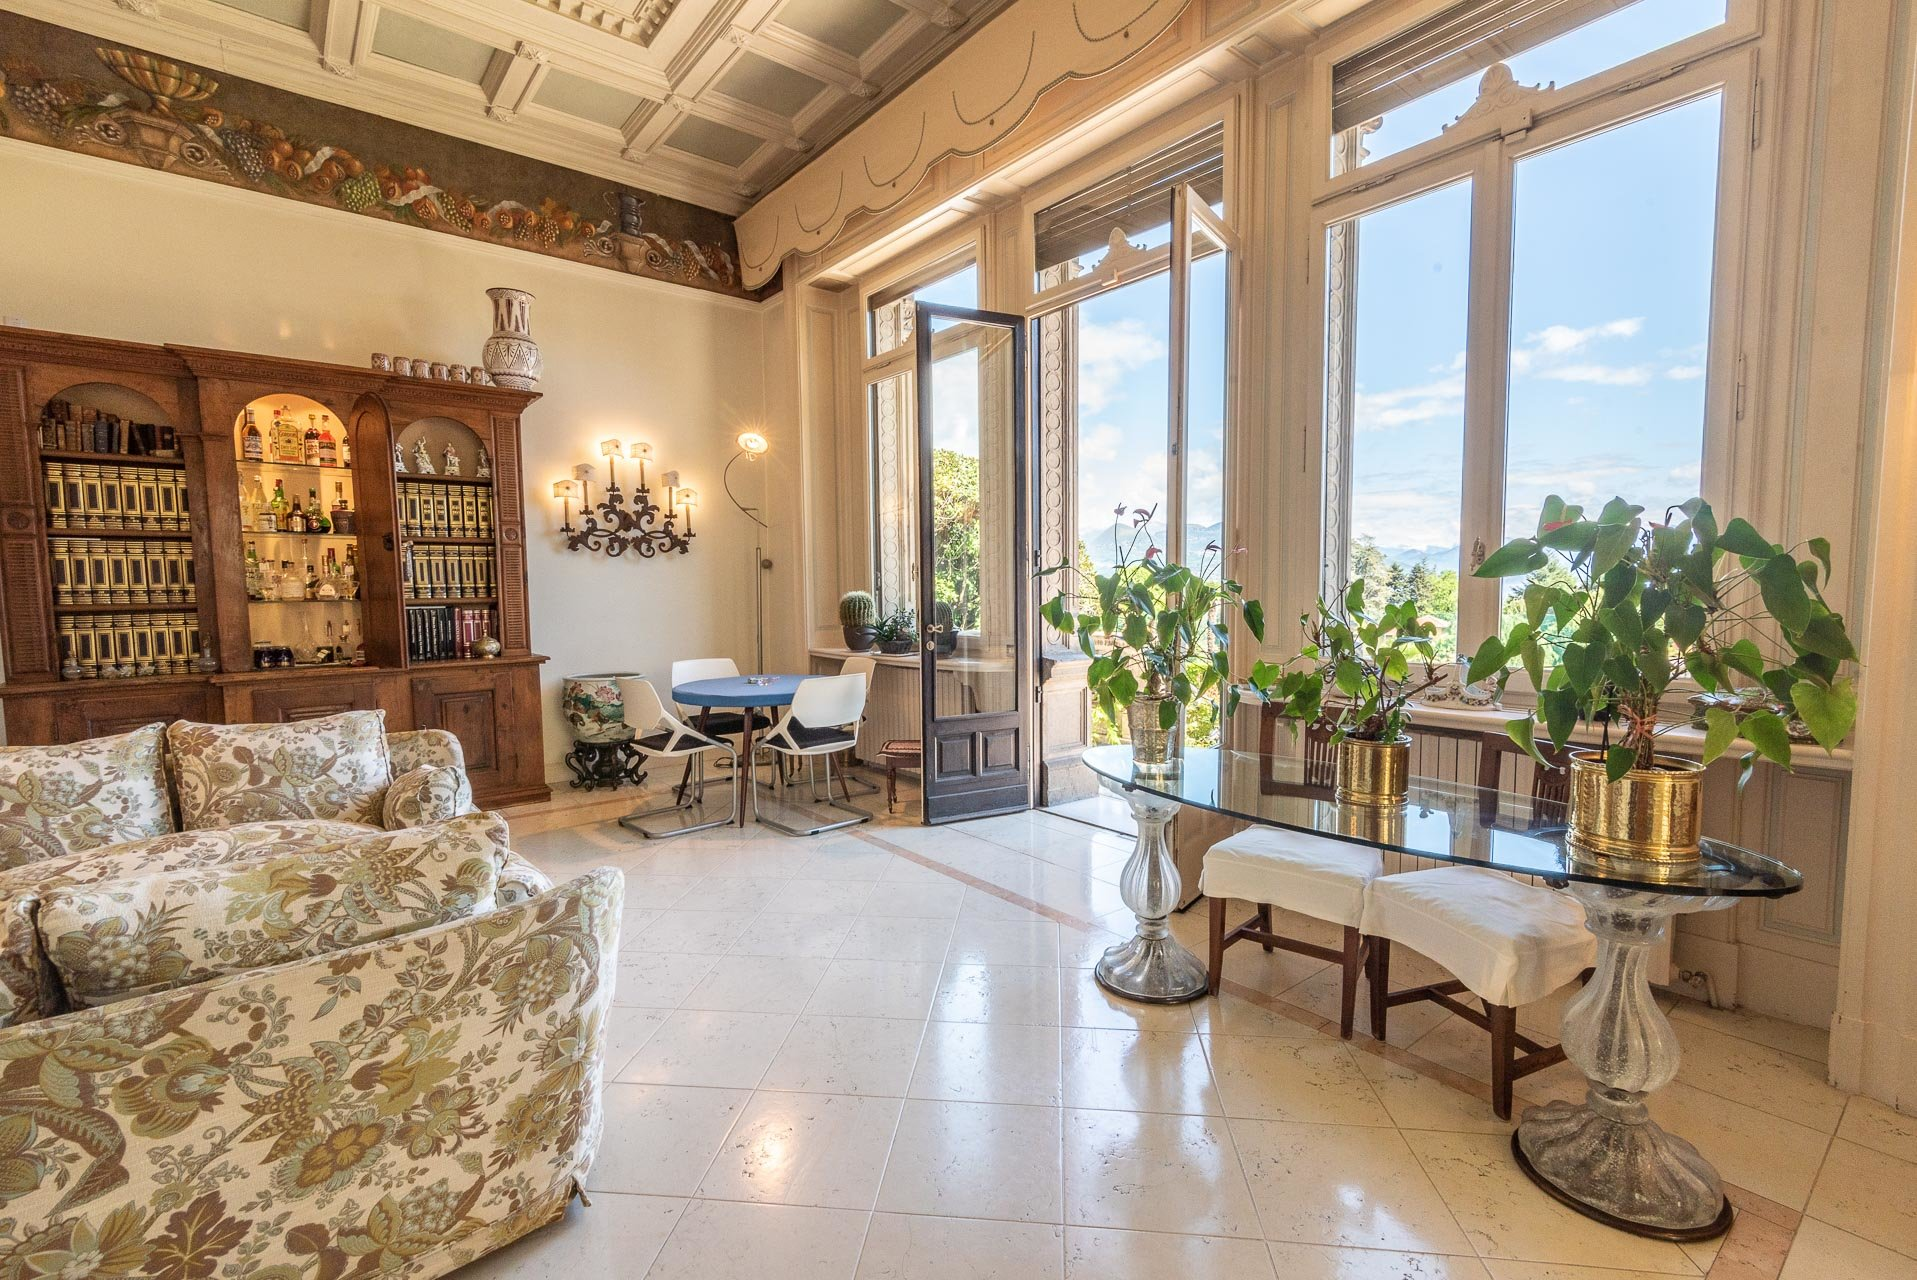 Luxurious apartment for sale in a villa in Stresa - living room